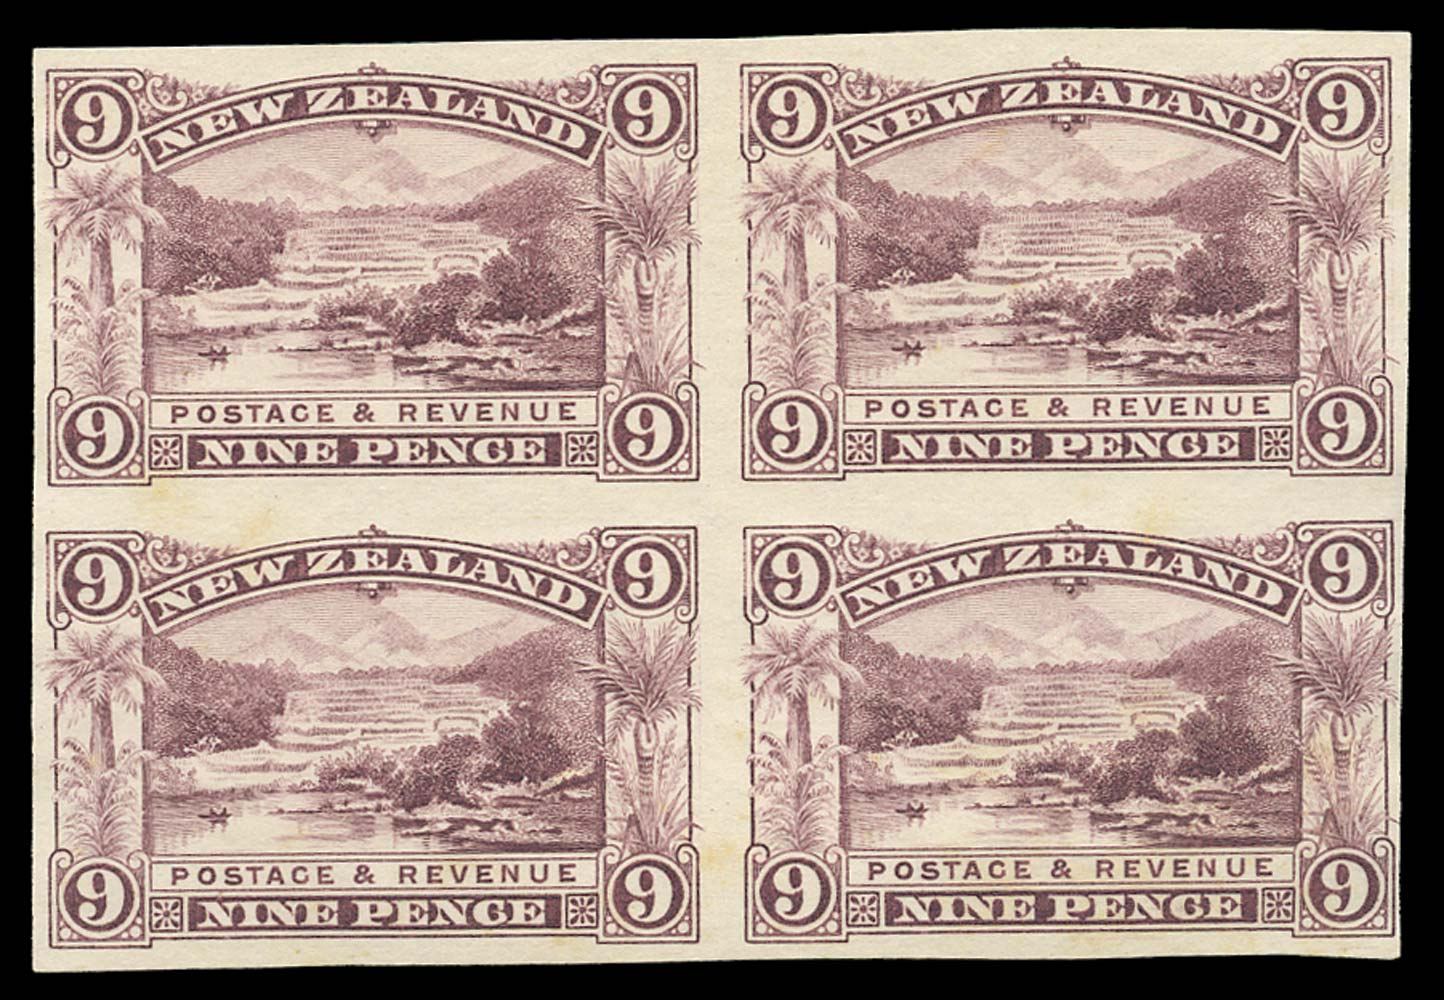 GB 1971  SG894a Mint imperf (pair)